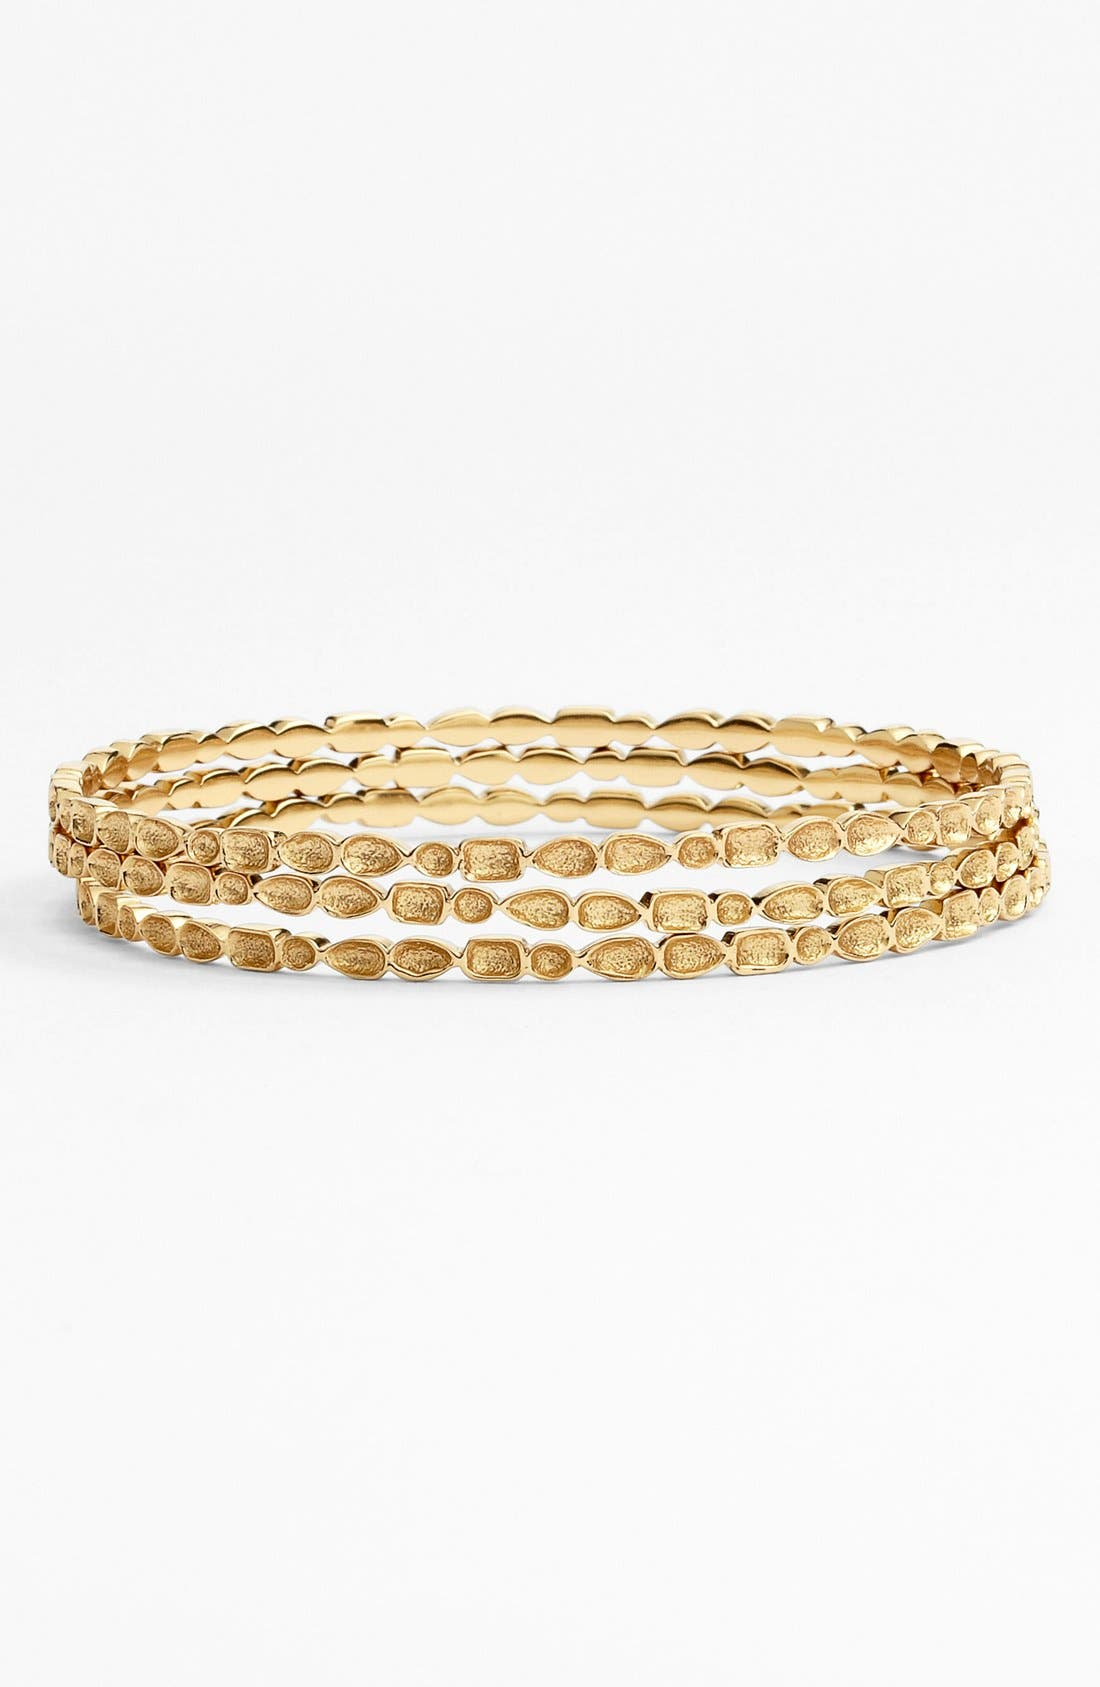 Main Image - Melinda Maria 'Mosaic' Bangle Set (Set of 3) (Nordstrom Exclusive)